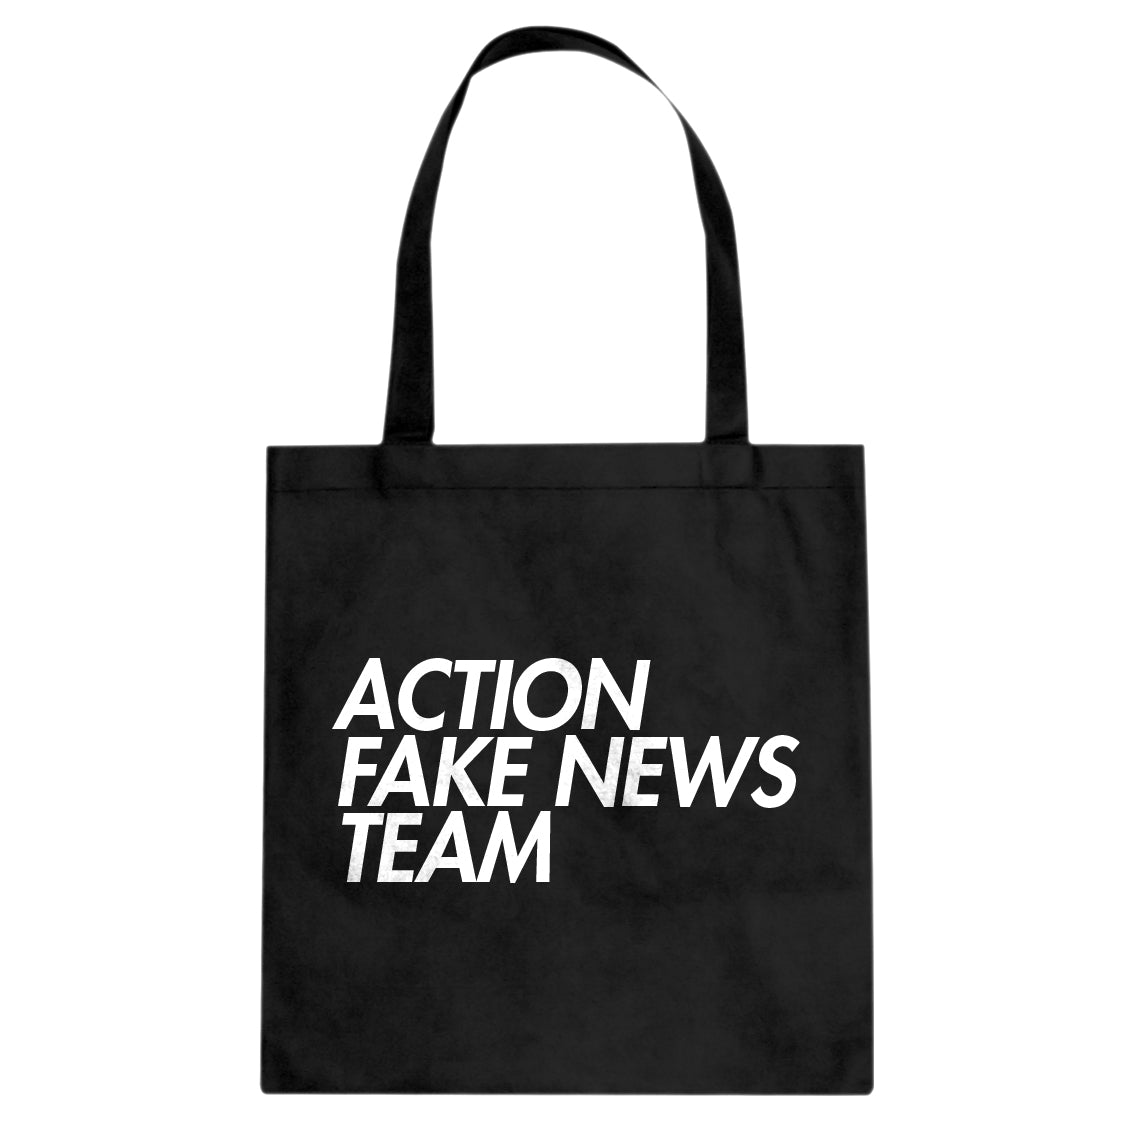 Tote Action Fake News Team Canvas Tote Bag